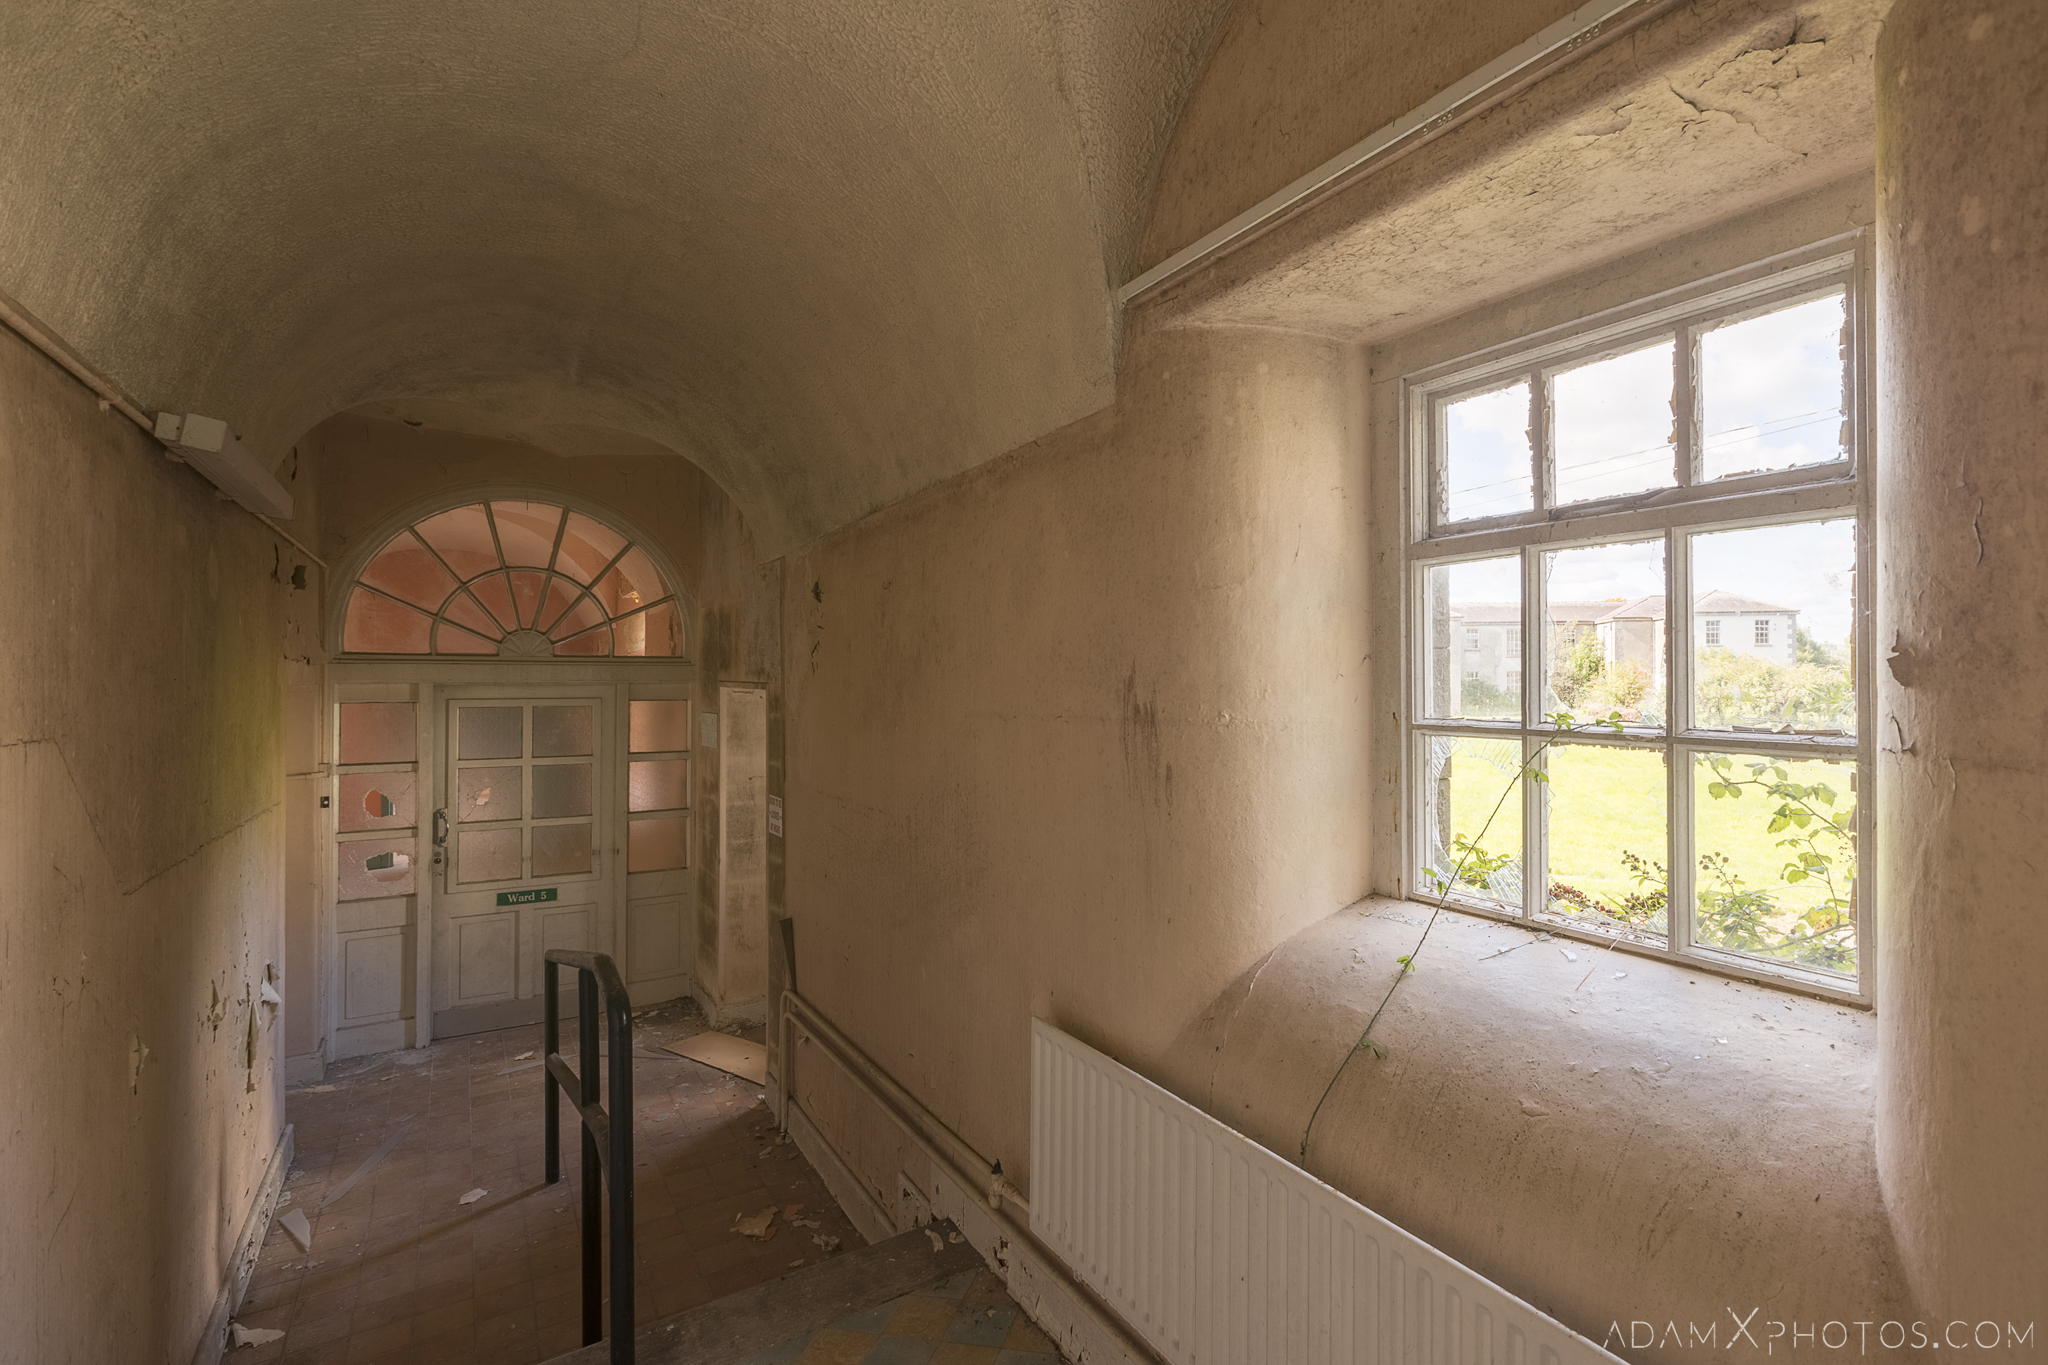 corridor window Connacht District Lunatic Asylum St Brigid's Hospital Adam X Urbex Urban Exploration Ireland Ballinasloe Access 2017 Abandoned decay lost forgotten derelict location creepy haunting eerie